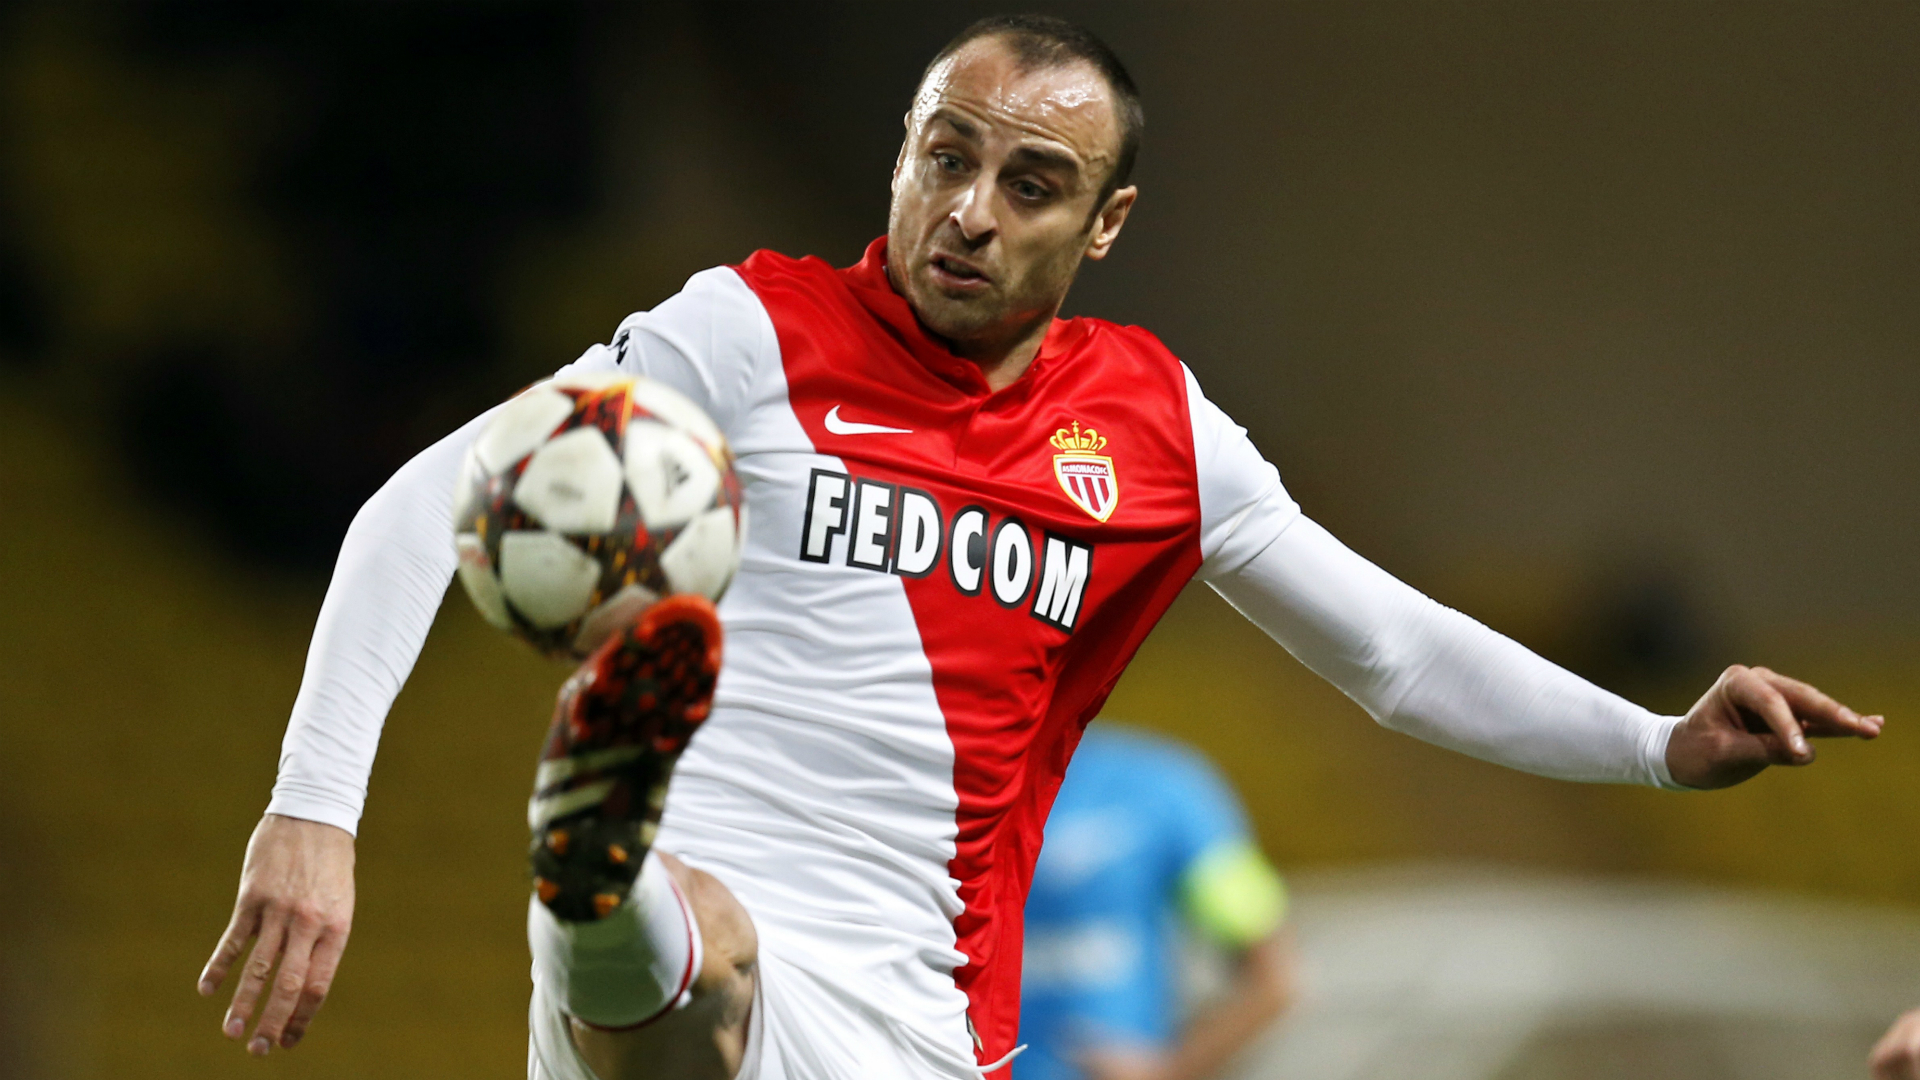 Dimitar Berbatov joins Kerala Blasters on a one-year deal